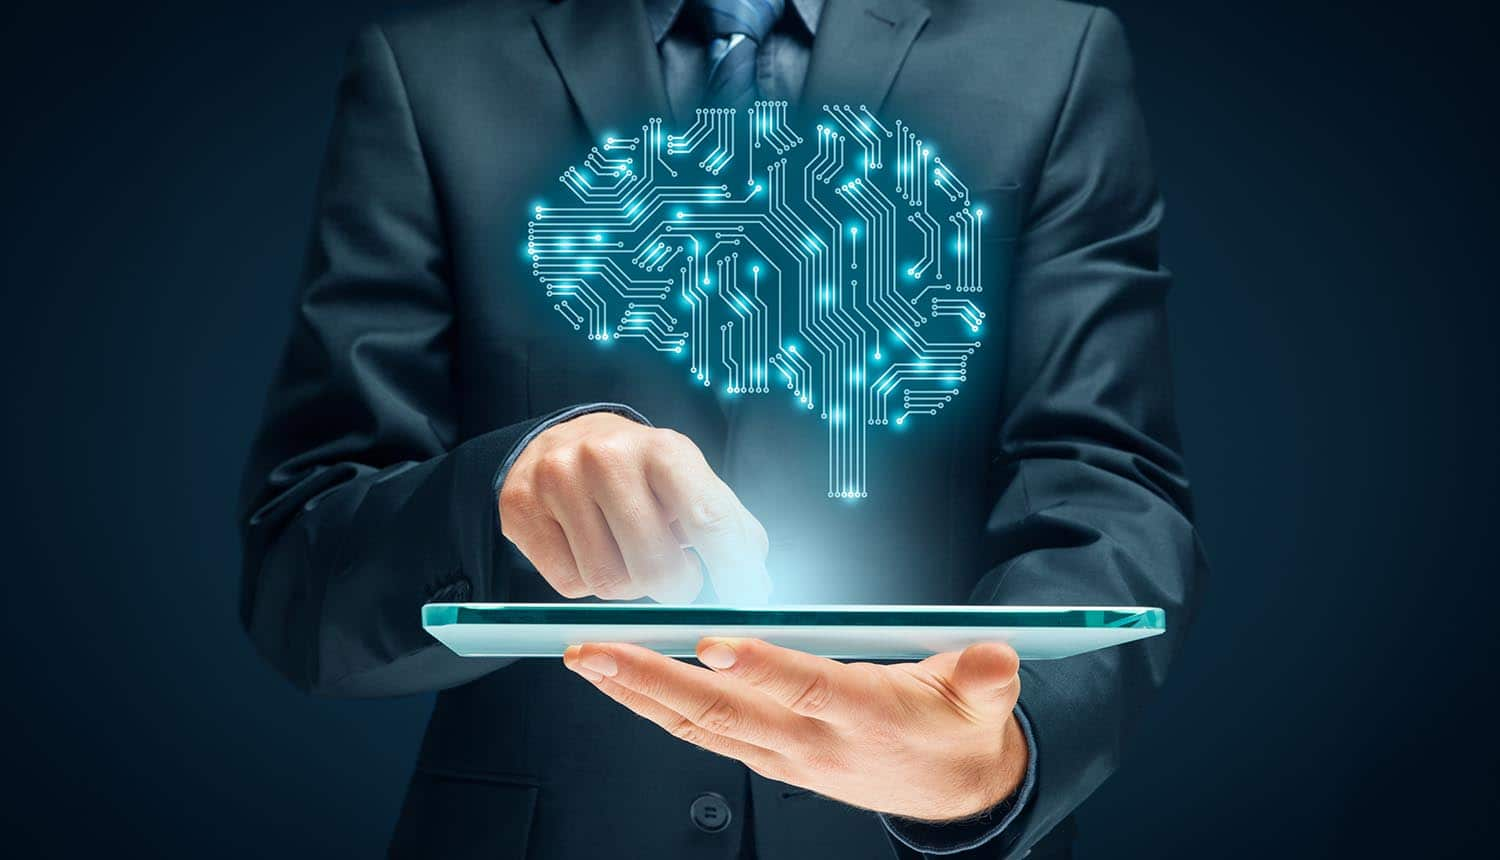 Man holding tablet with virtual brain showing the guideline from Council of Europe for algorithmic decision making